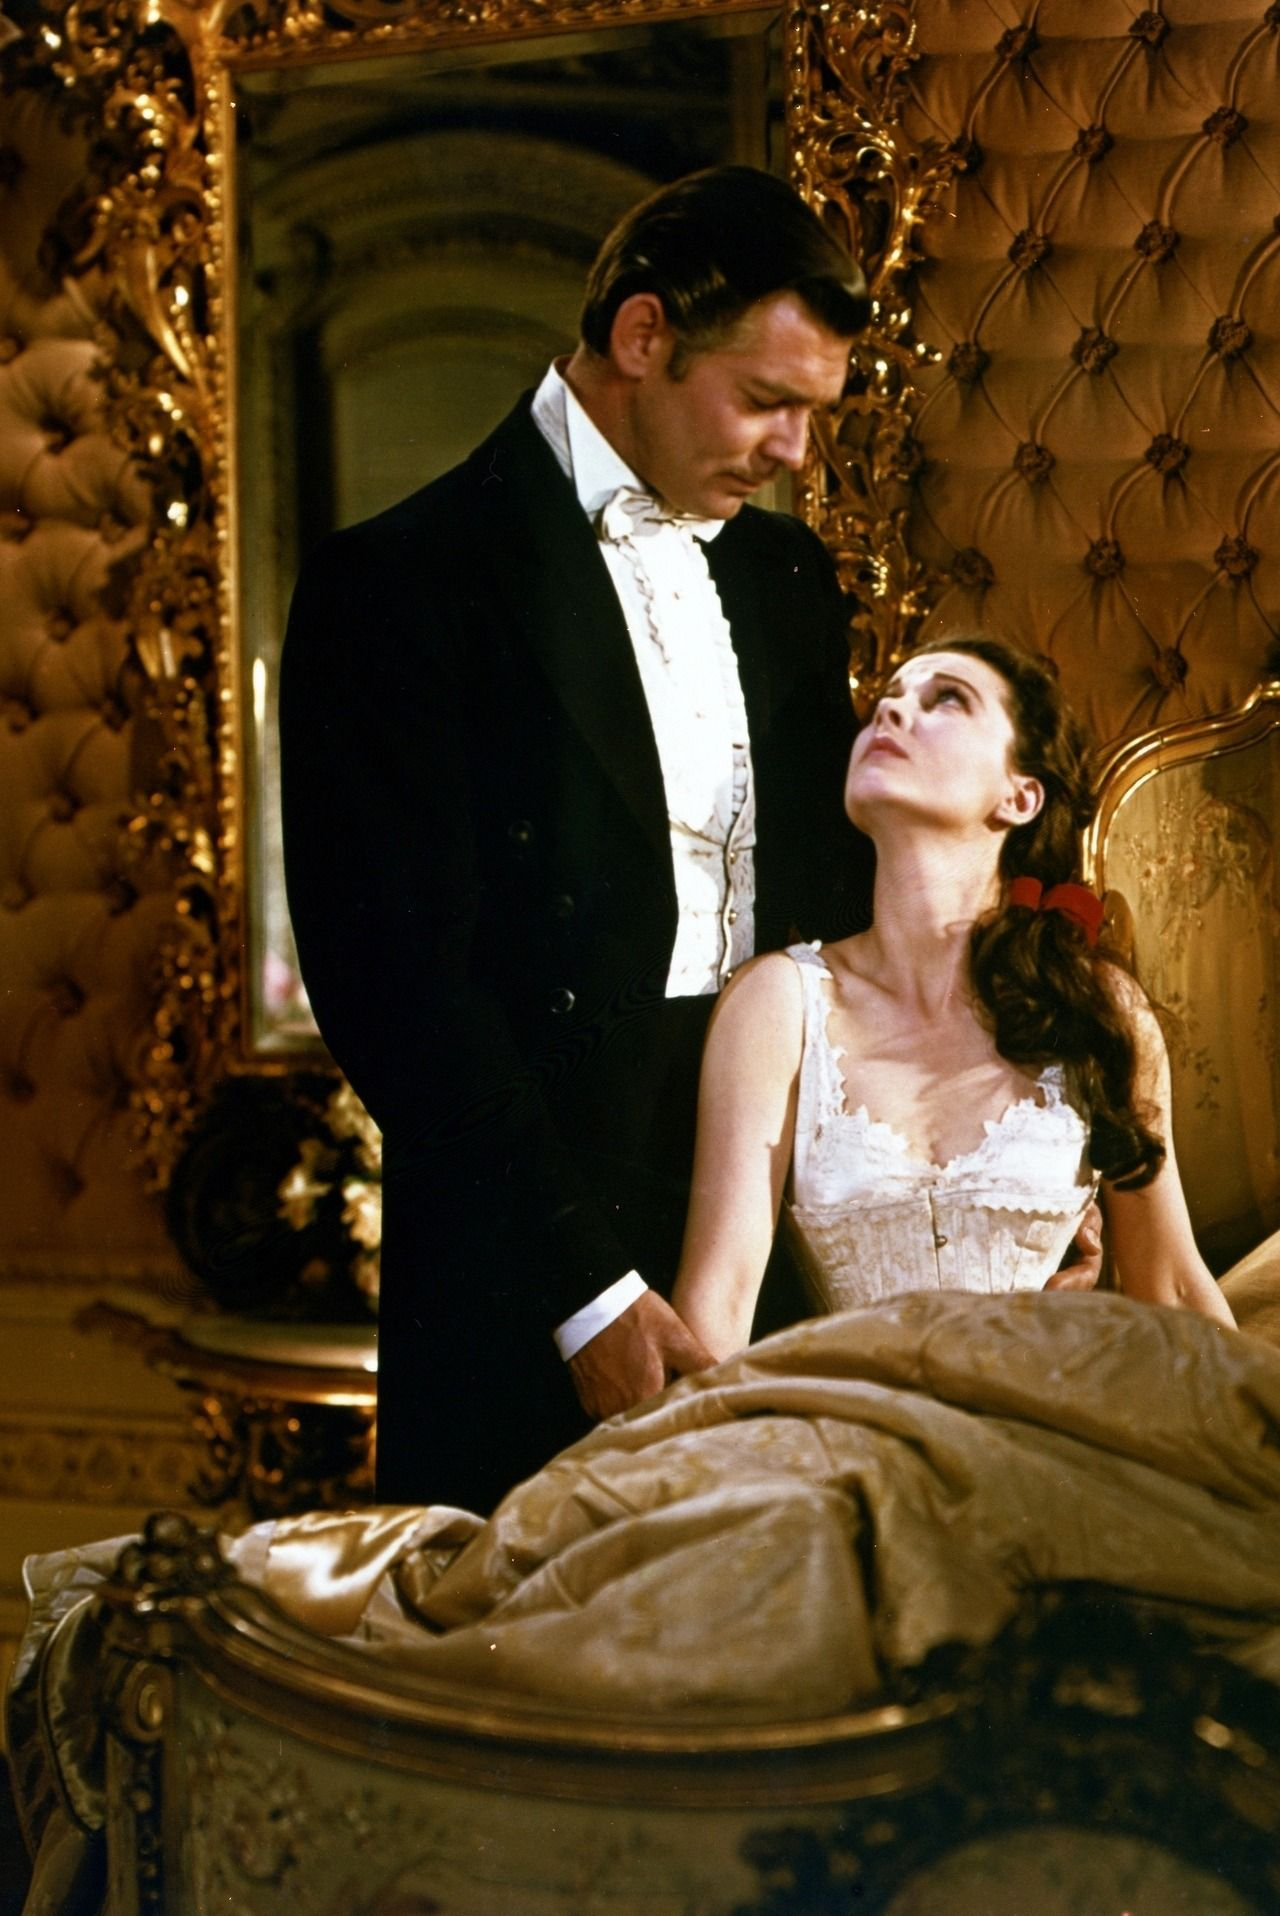 Pin By Savy 64 Blm On Movies Tv Gone With The Wind Wind Movie Vivien Leigh